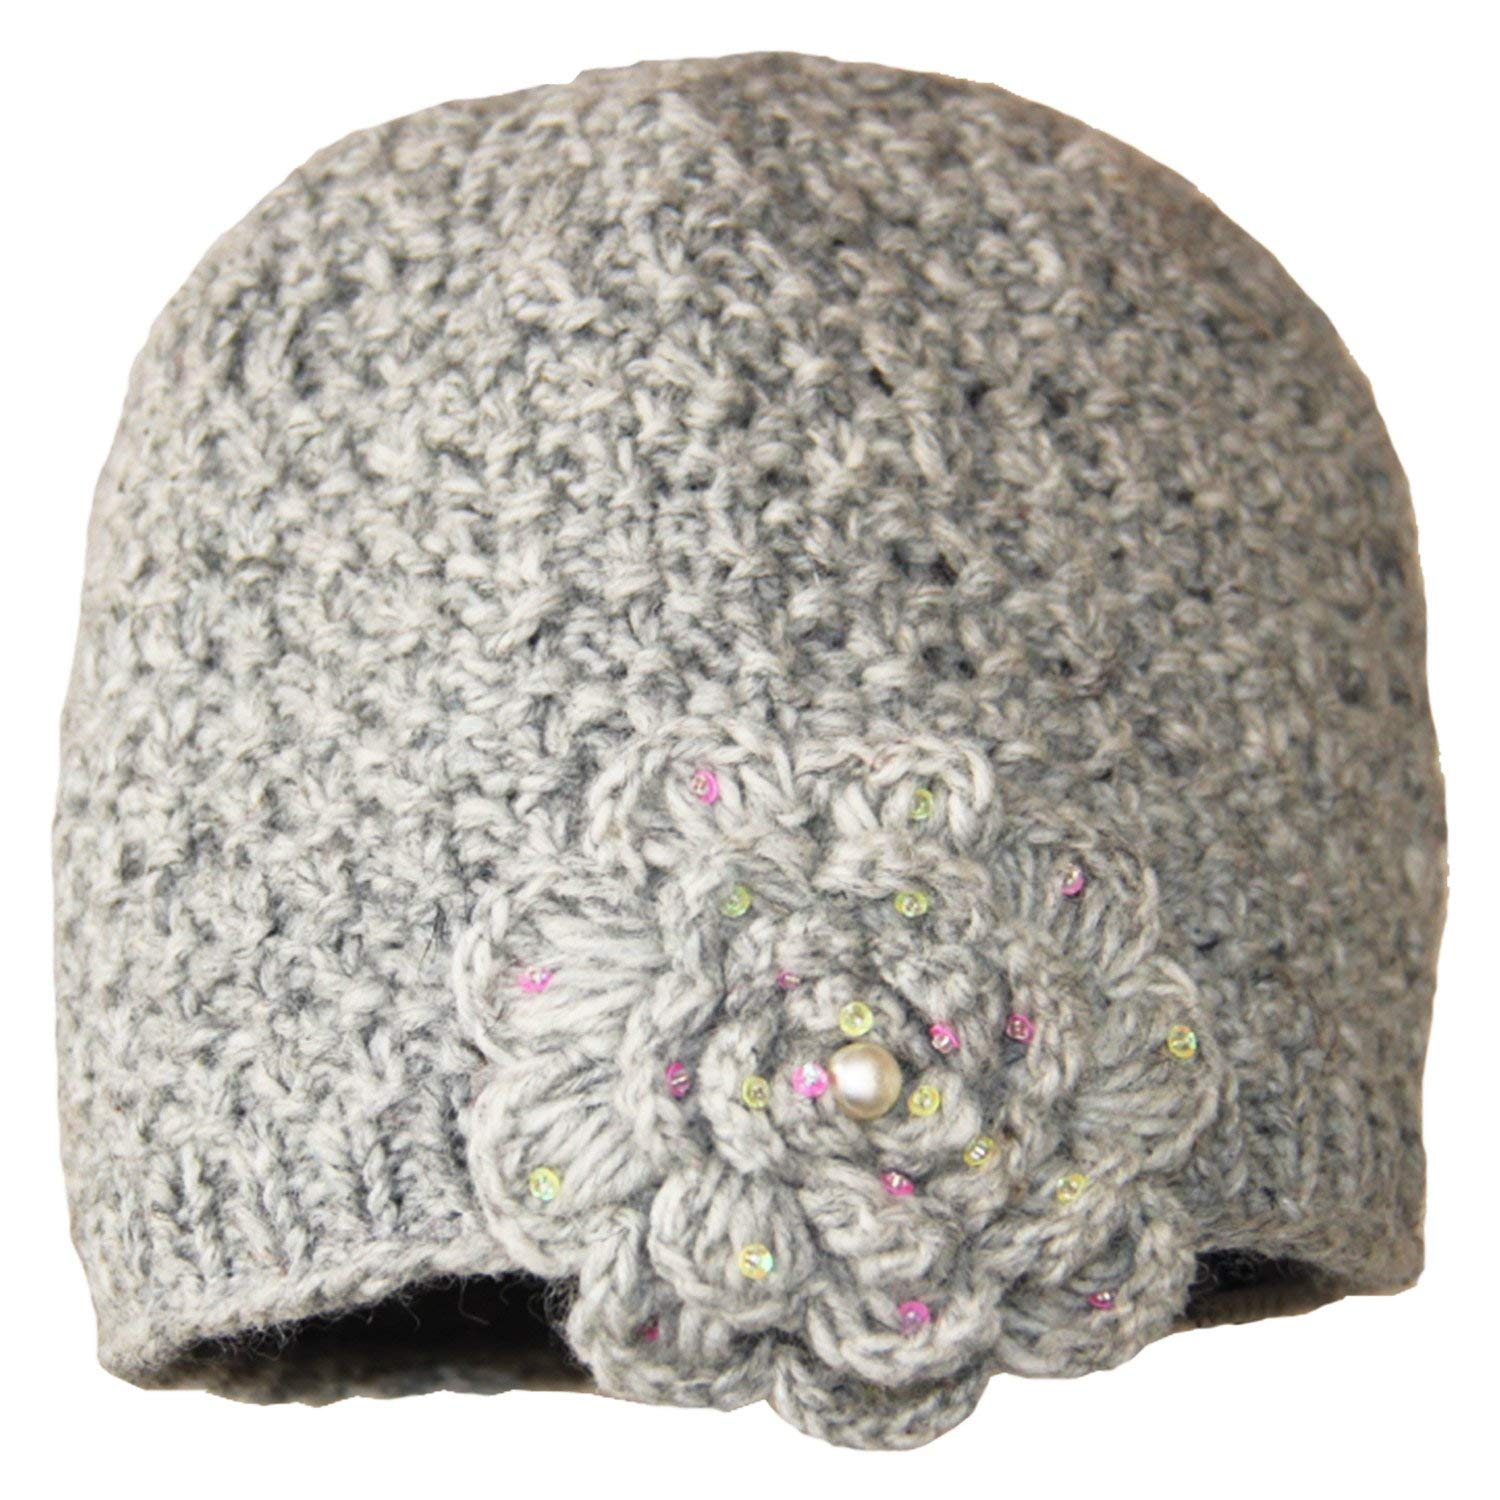 879621ecdaa Get Quotations · SIJJL Gray Crochet Flower Beanie